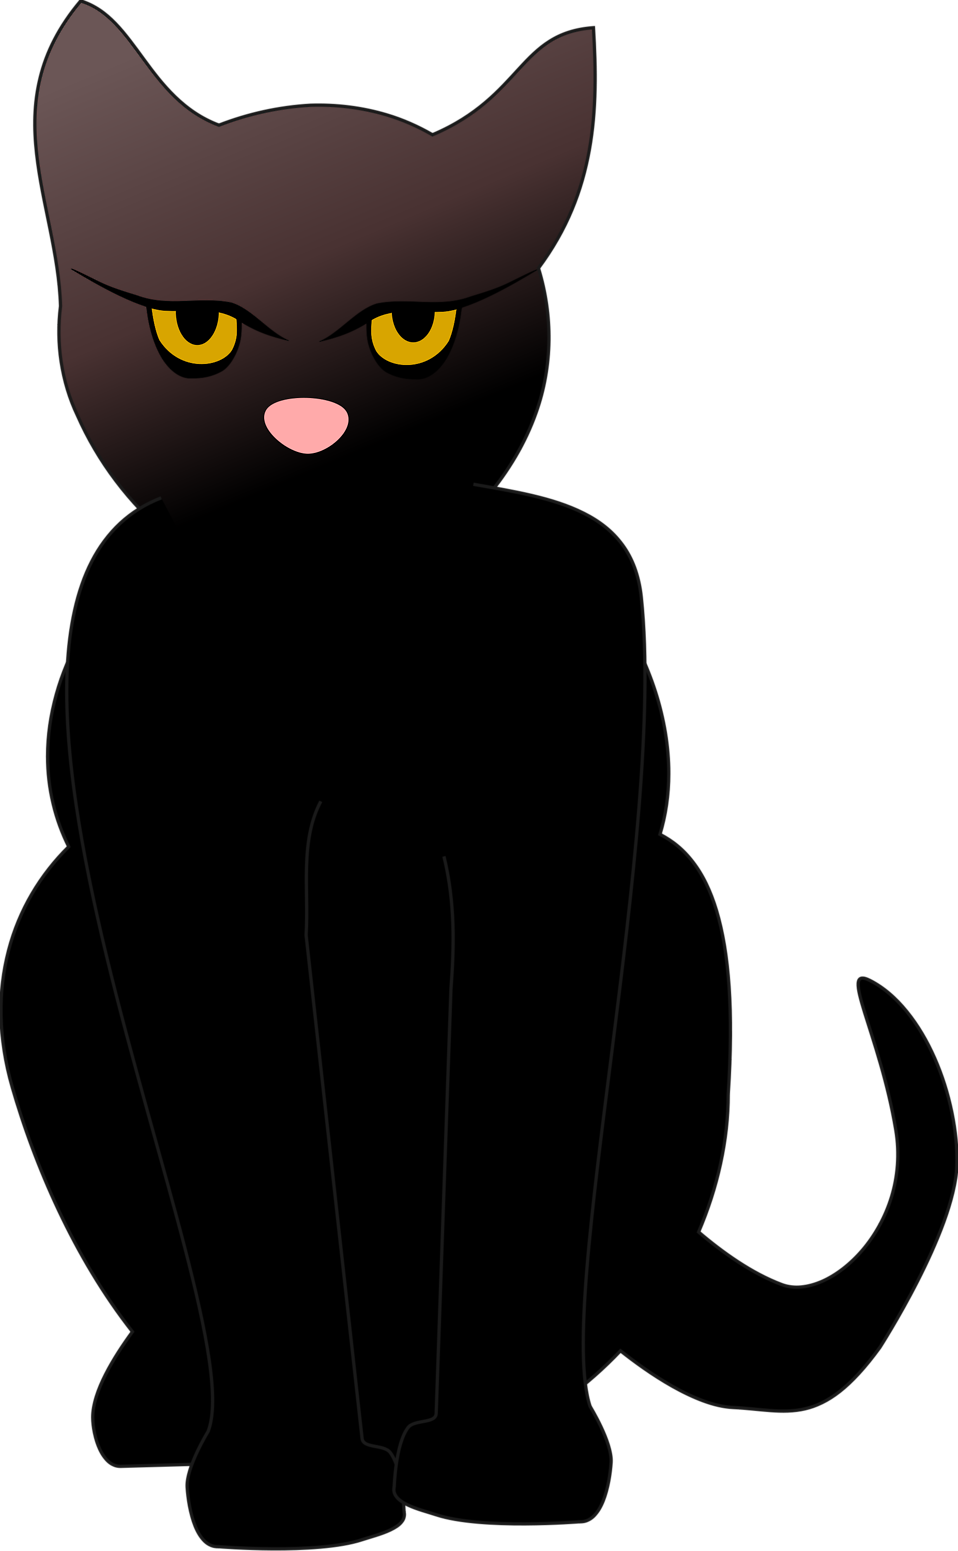 Black cat clipart halloween svg library download Cat Black | Free Stock Photo | Illustrated silhouette of a black cat ... svg library download